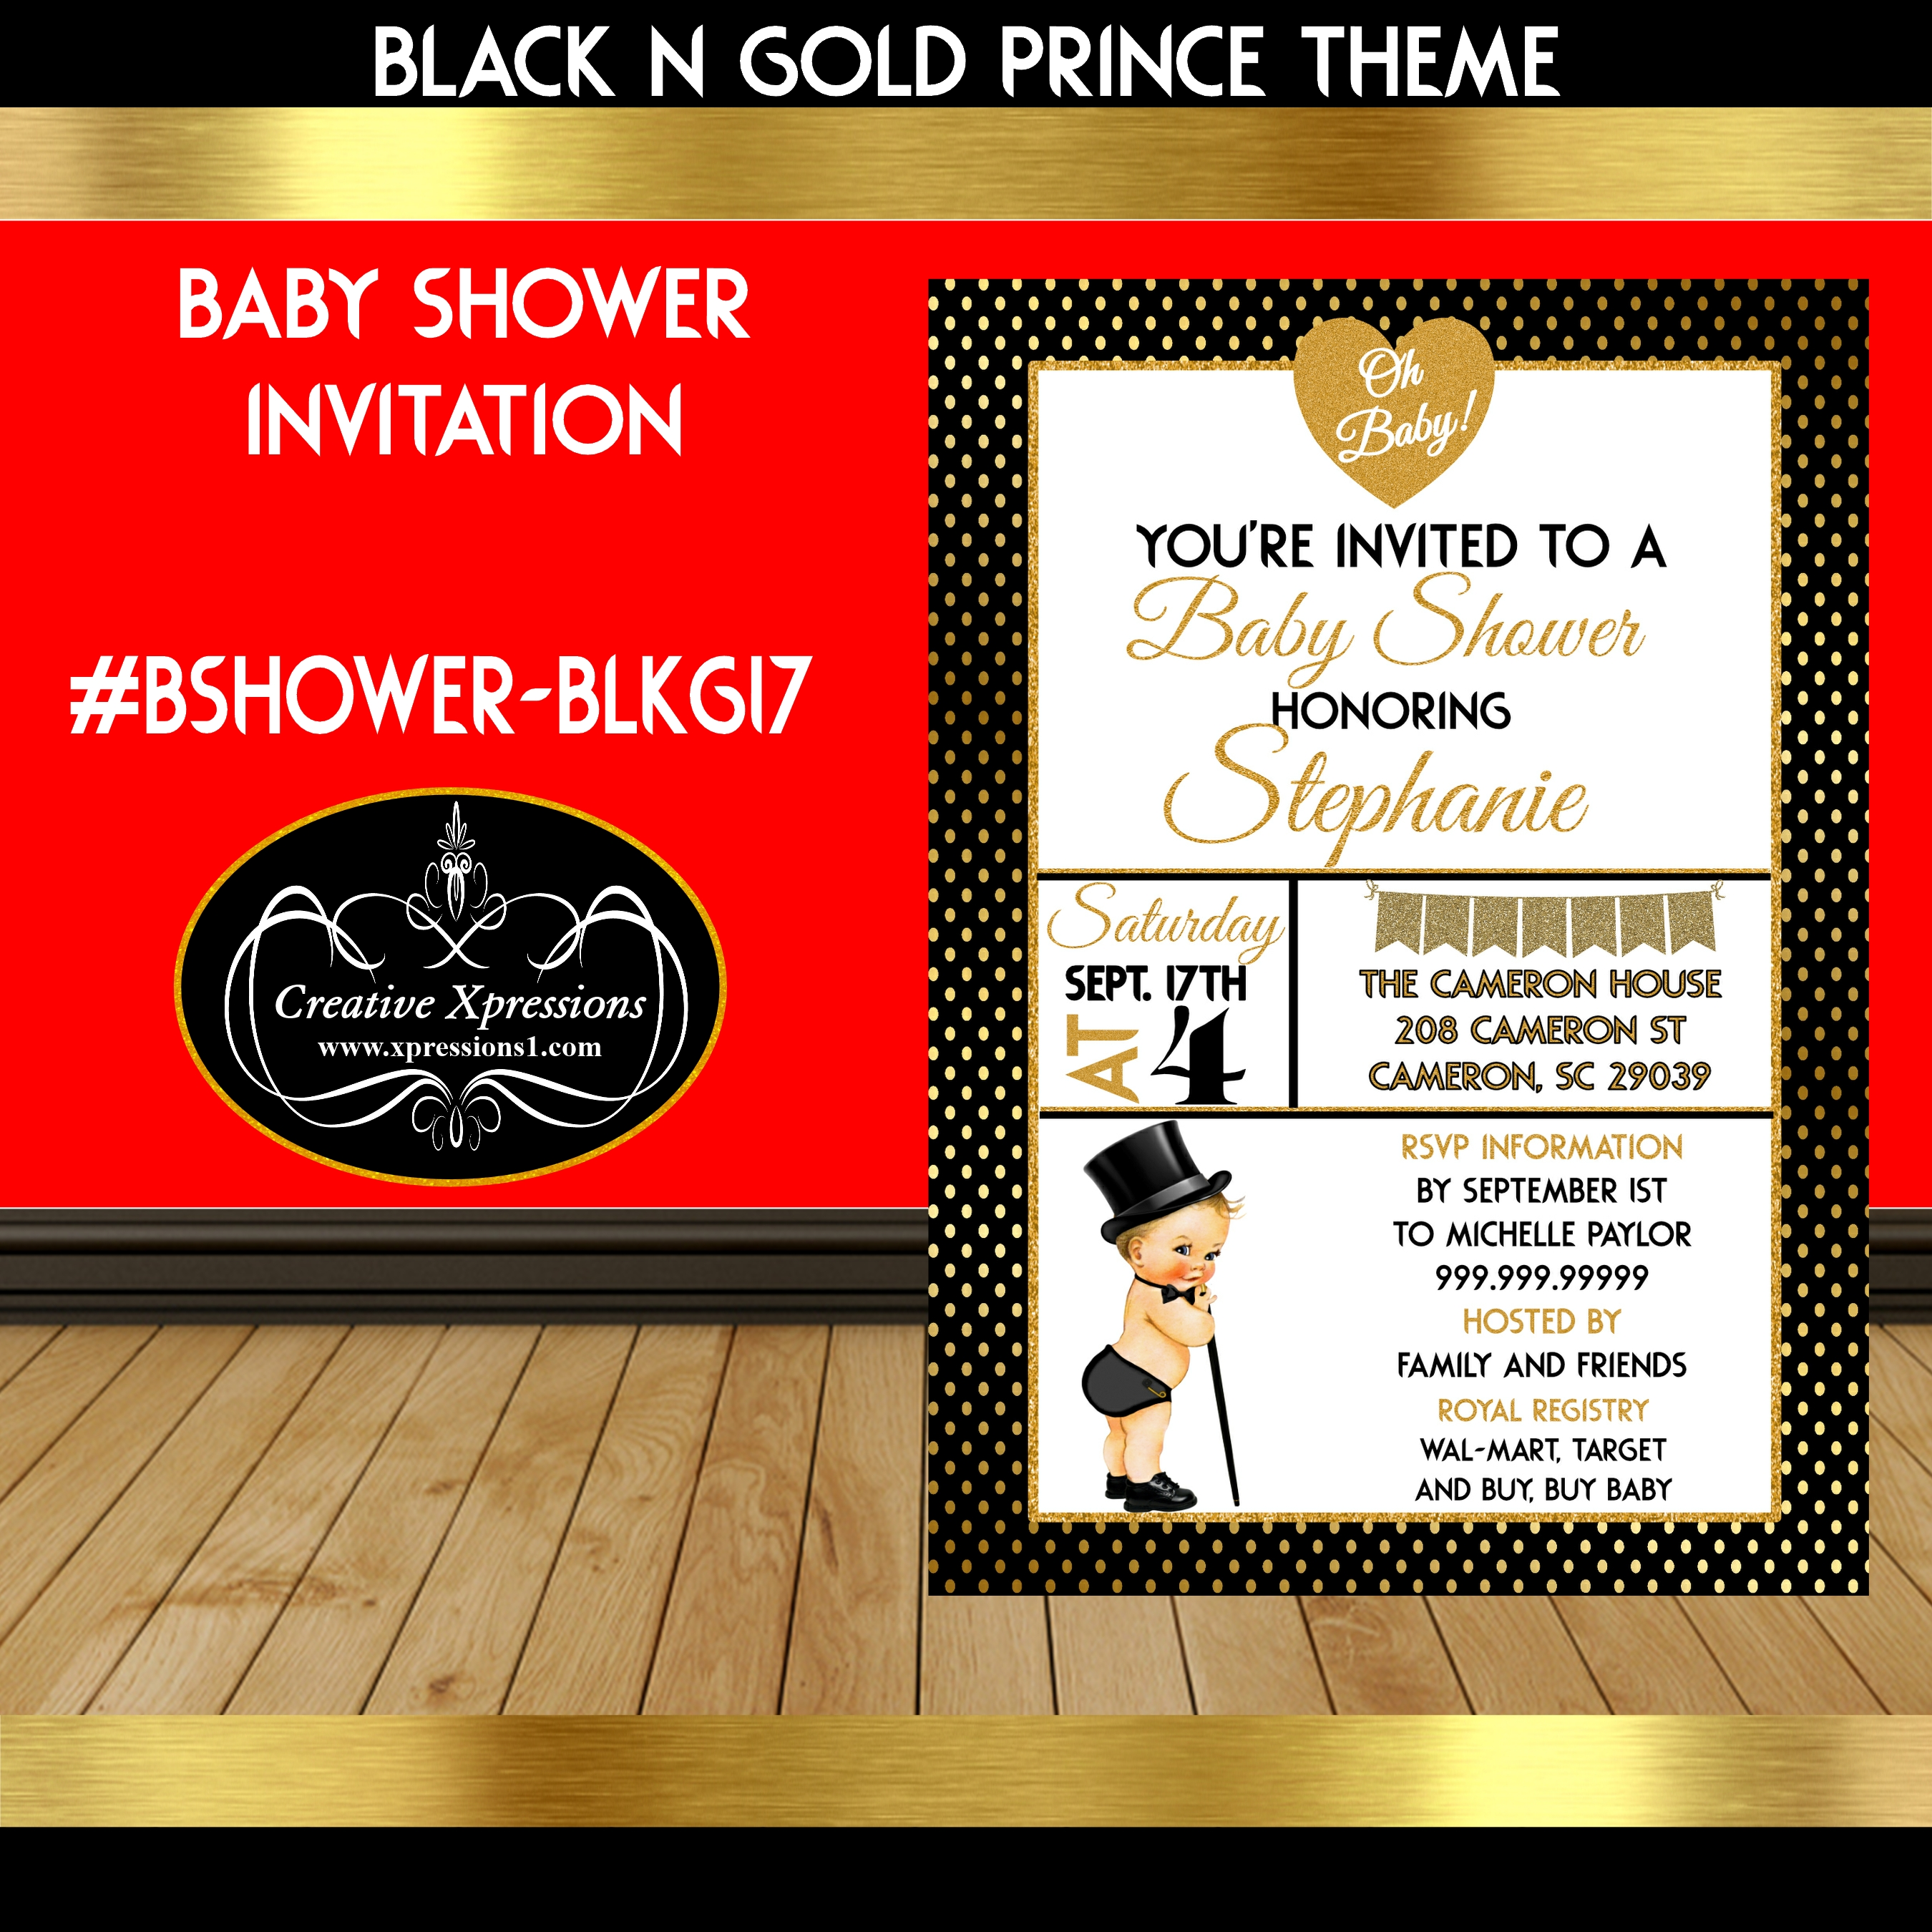 Oh Baby Black and Gold Invitation